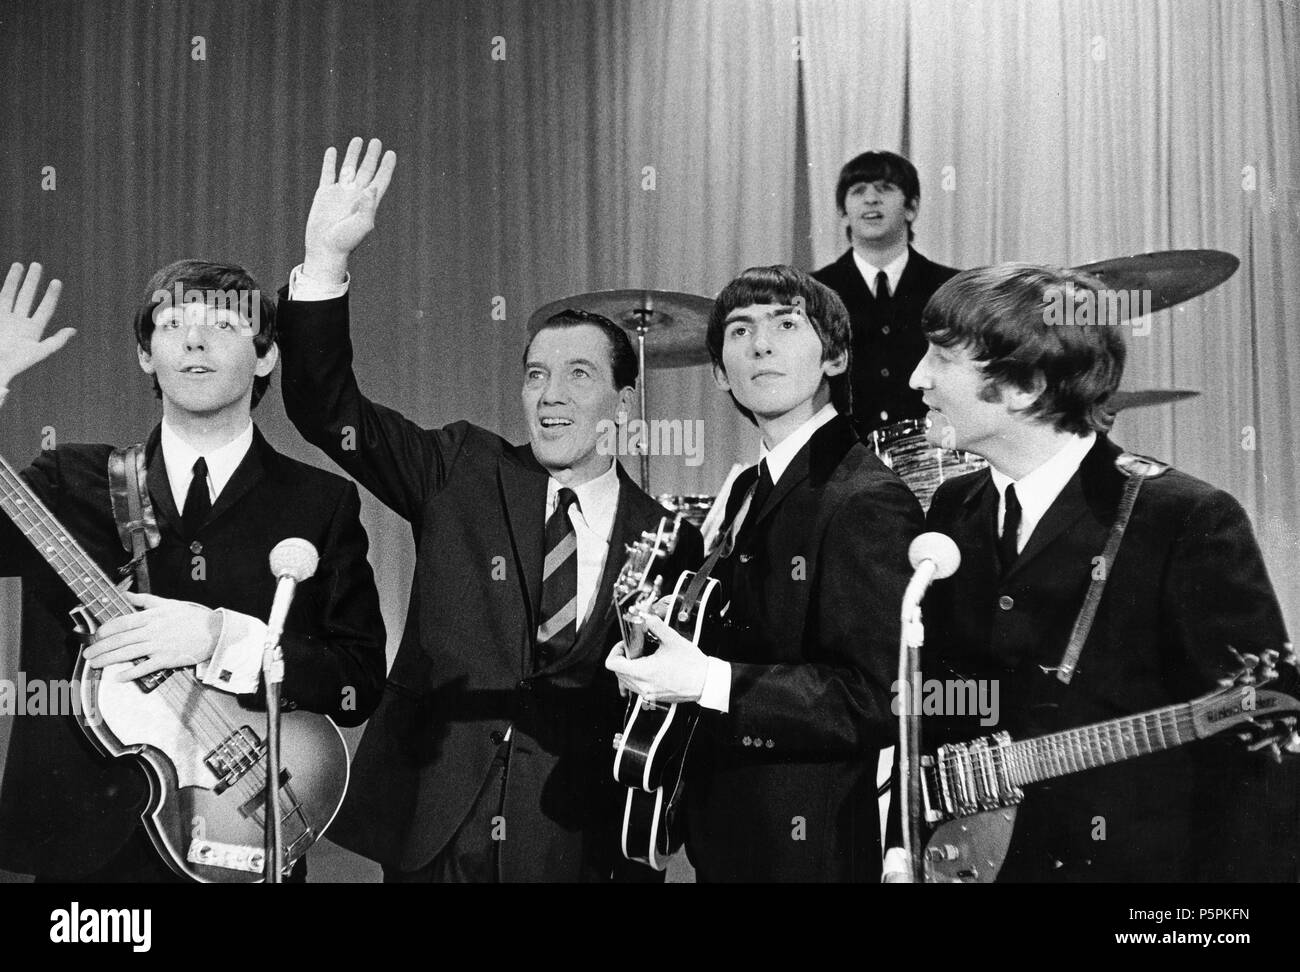 The Beatles Ed Sullivan Show New York 60s